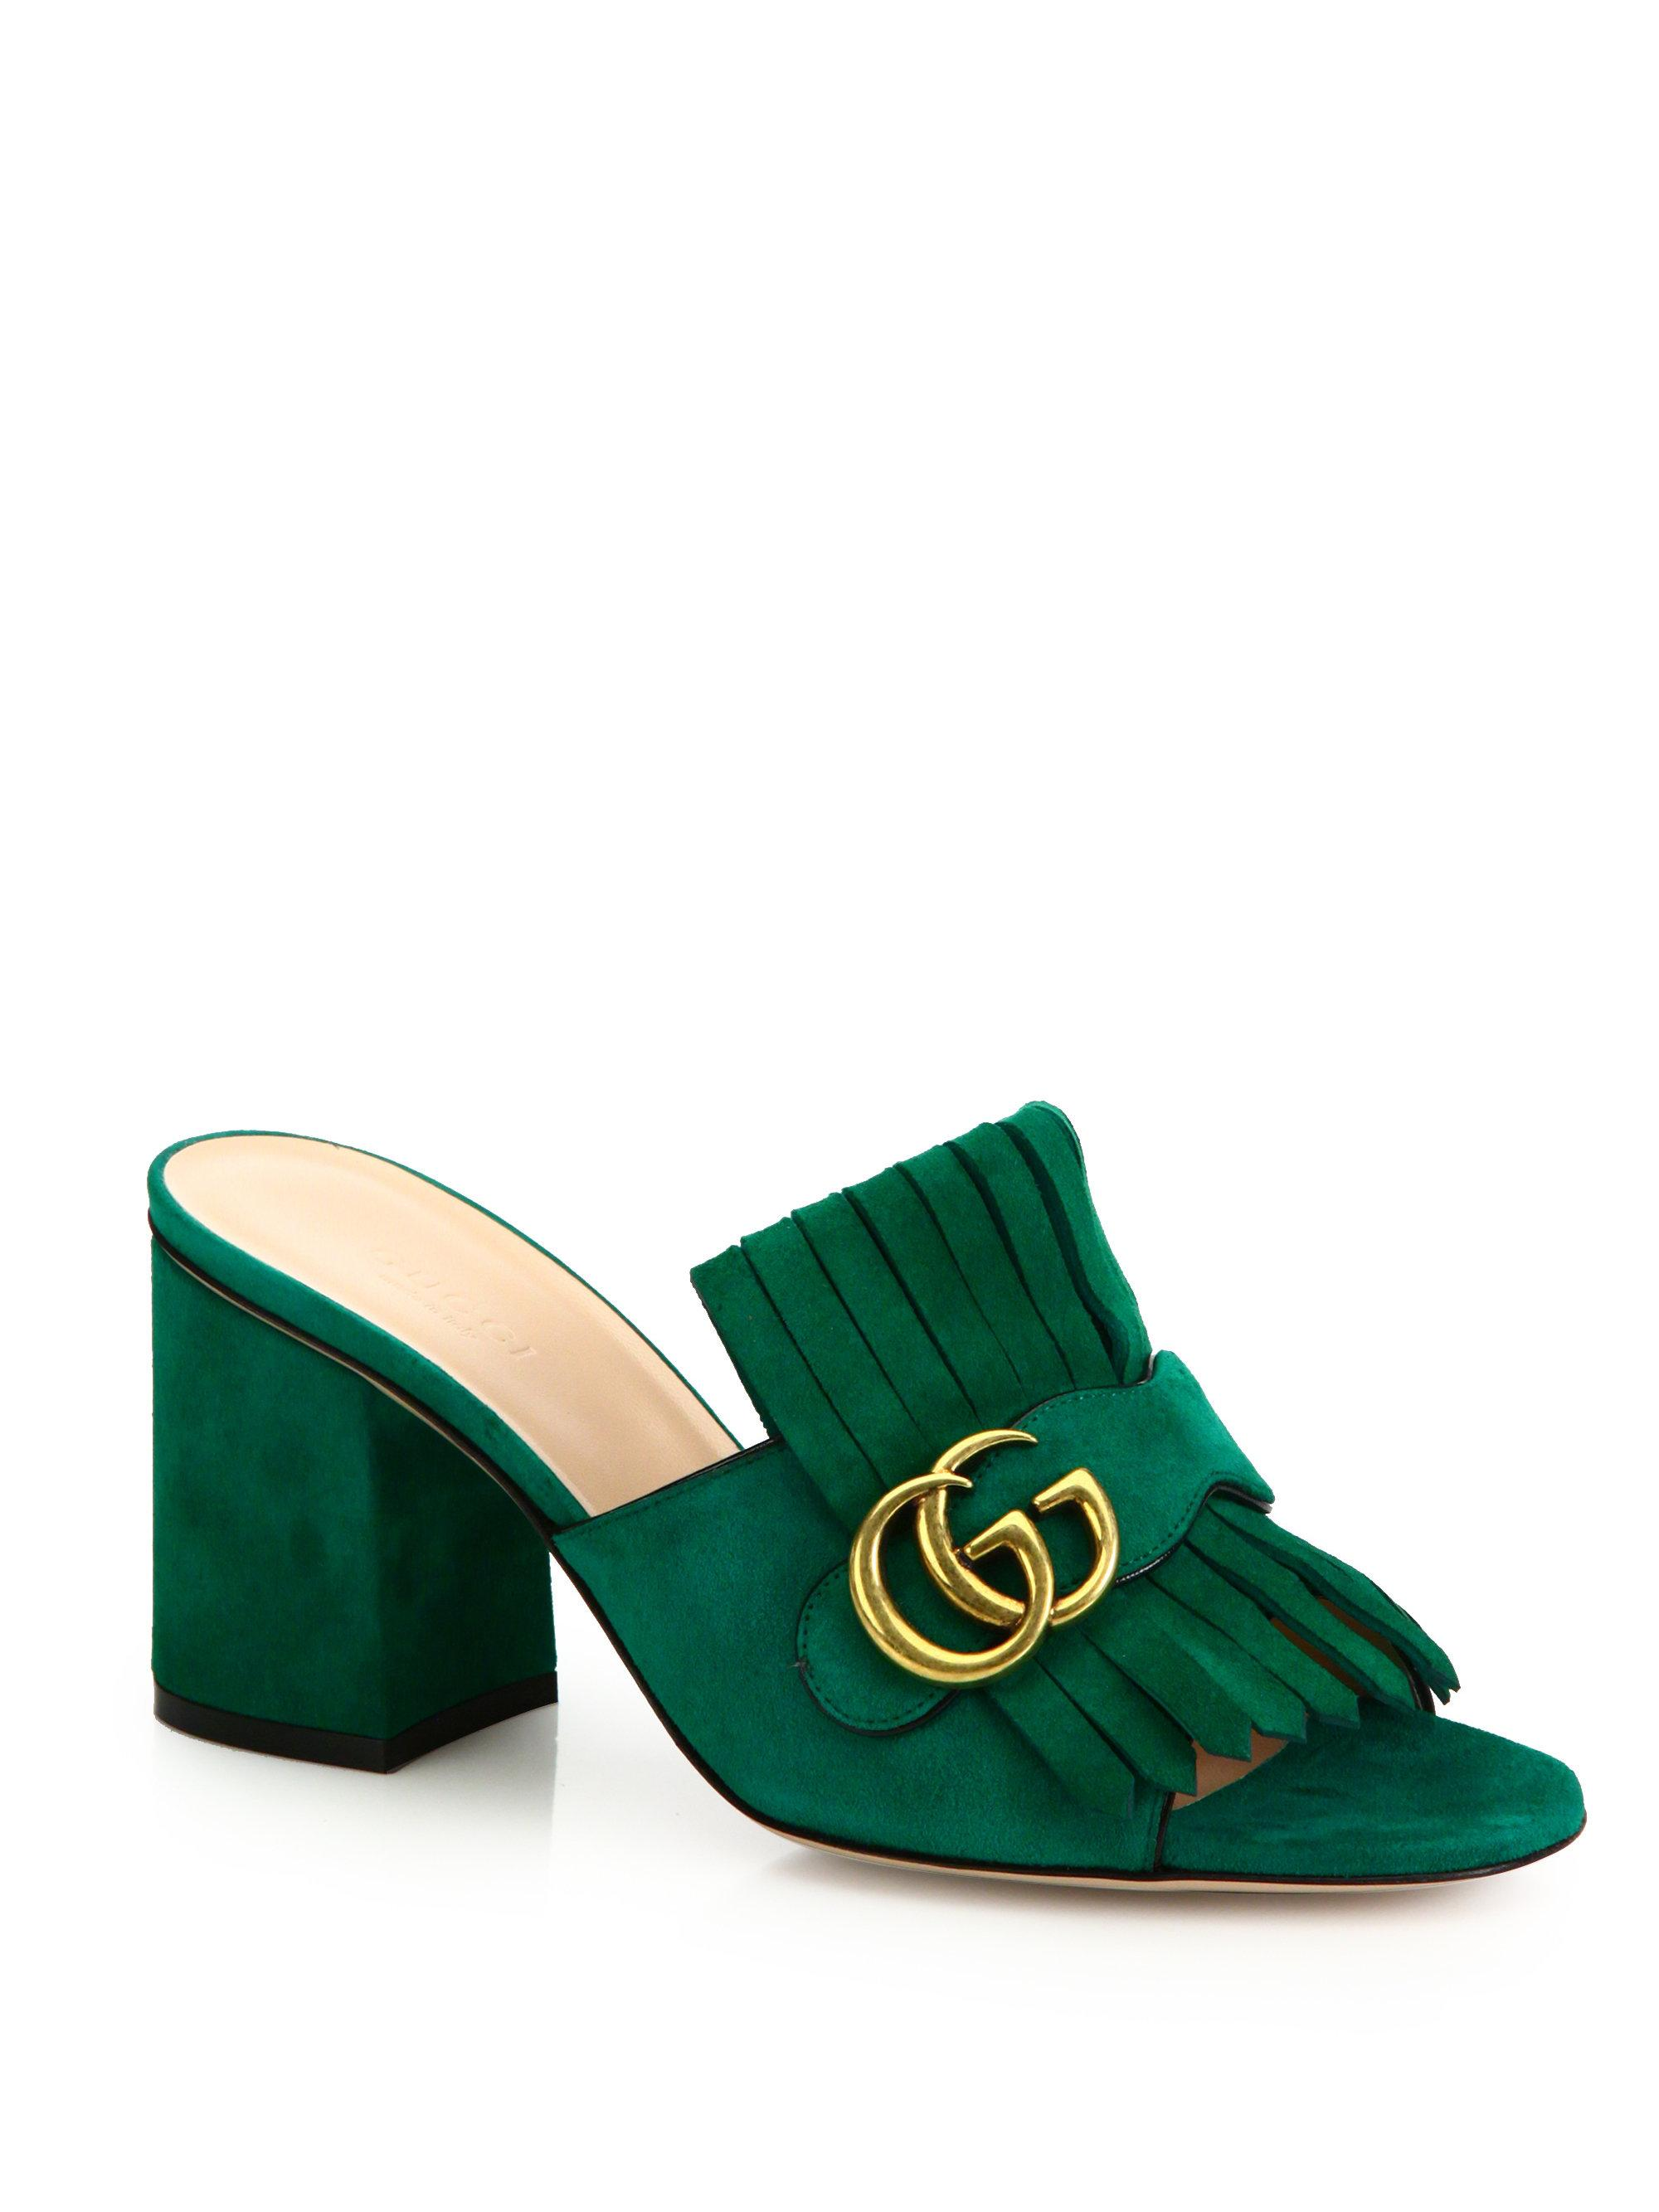 Gucci Marmont Gg Kiltie Suede Block Heel Mules In Green Lyst